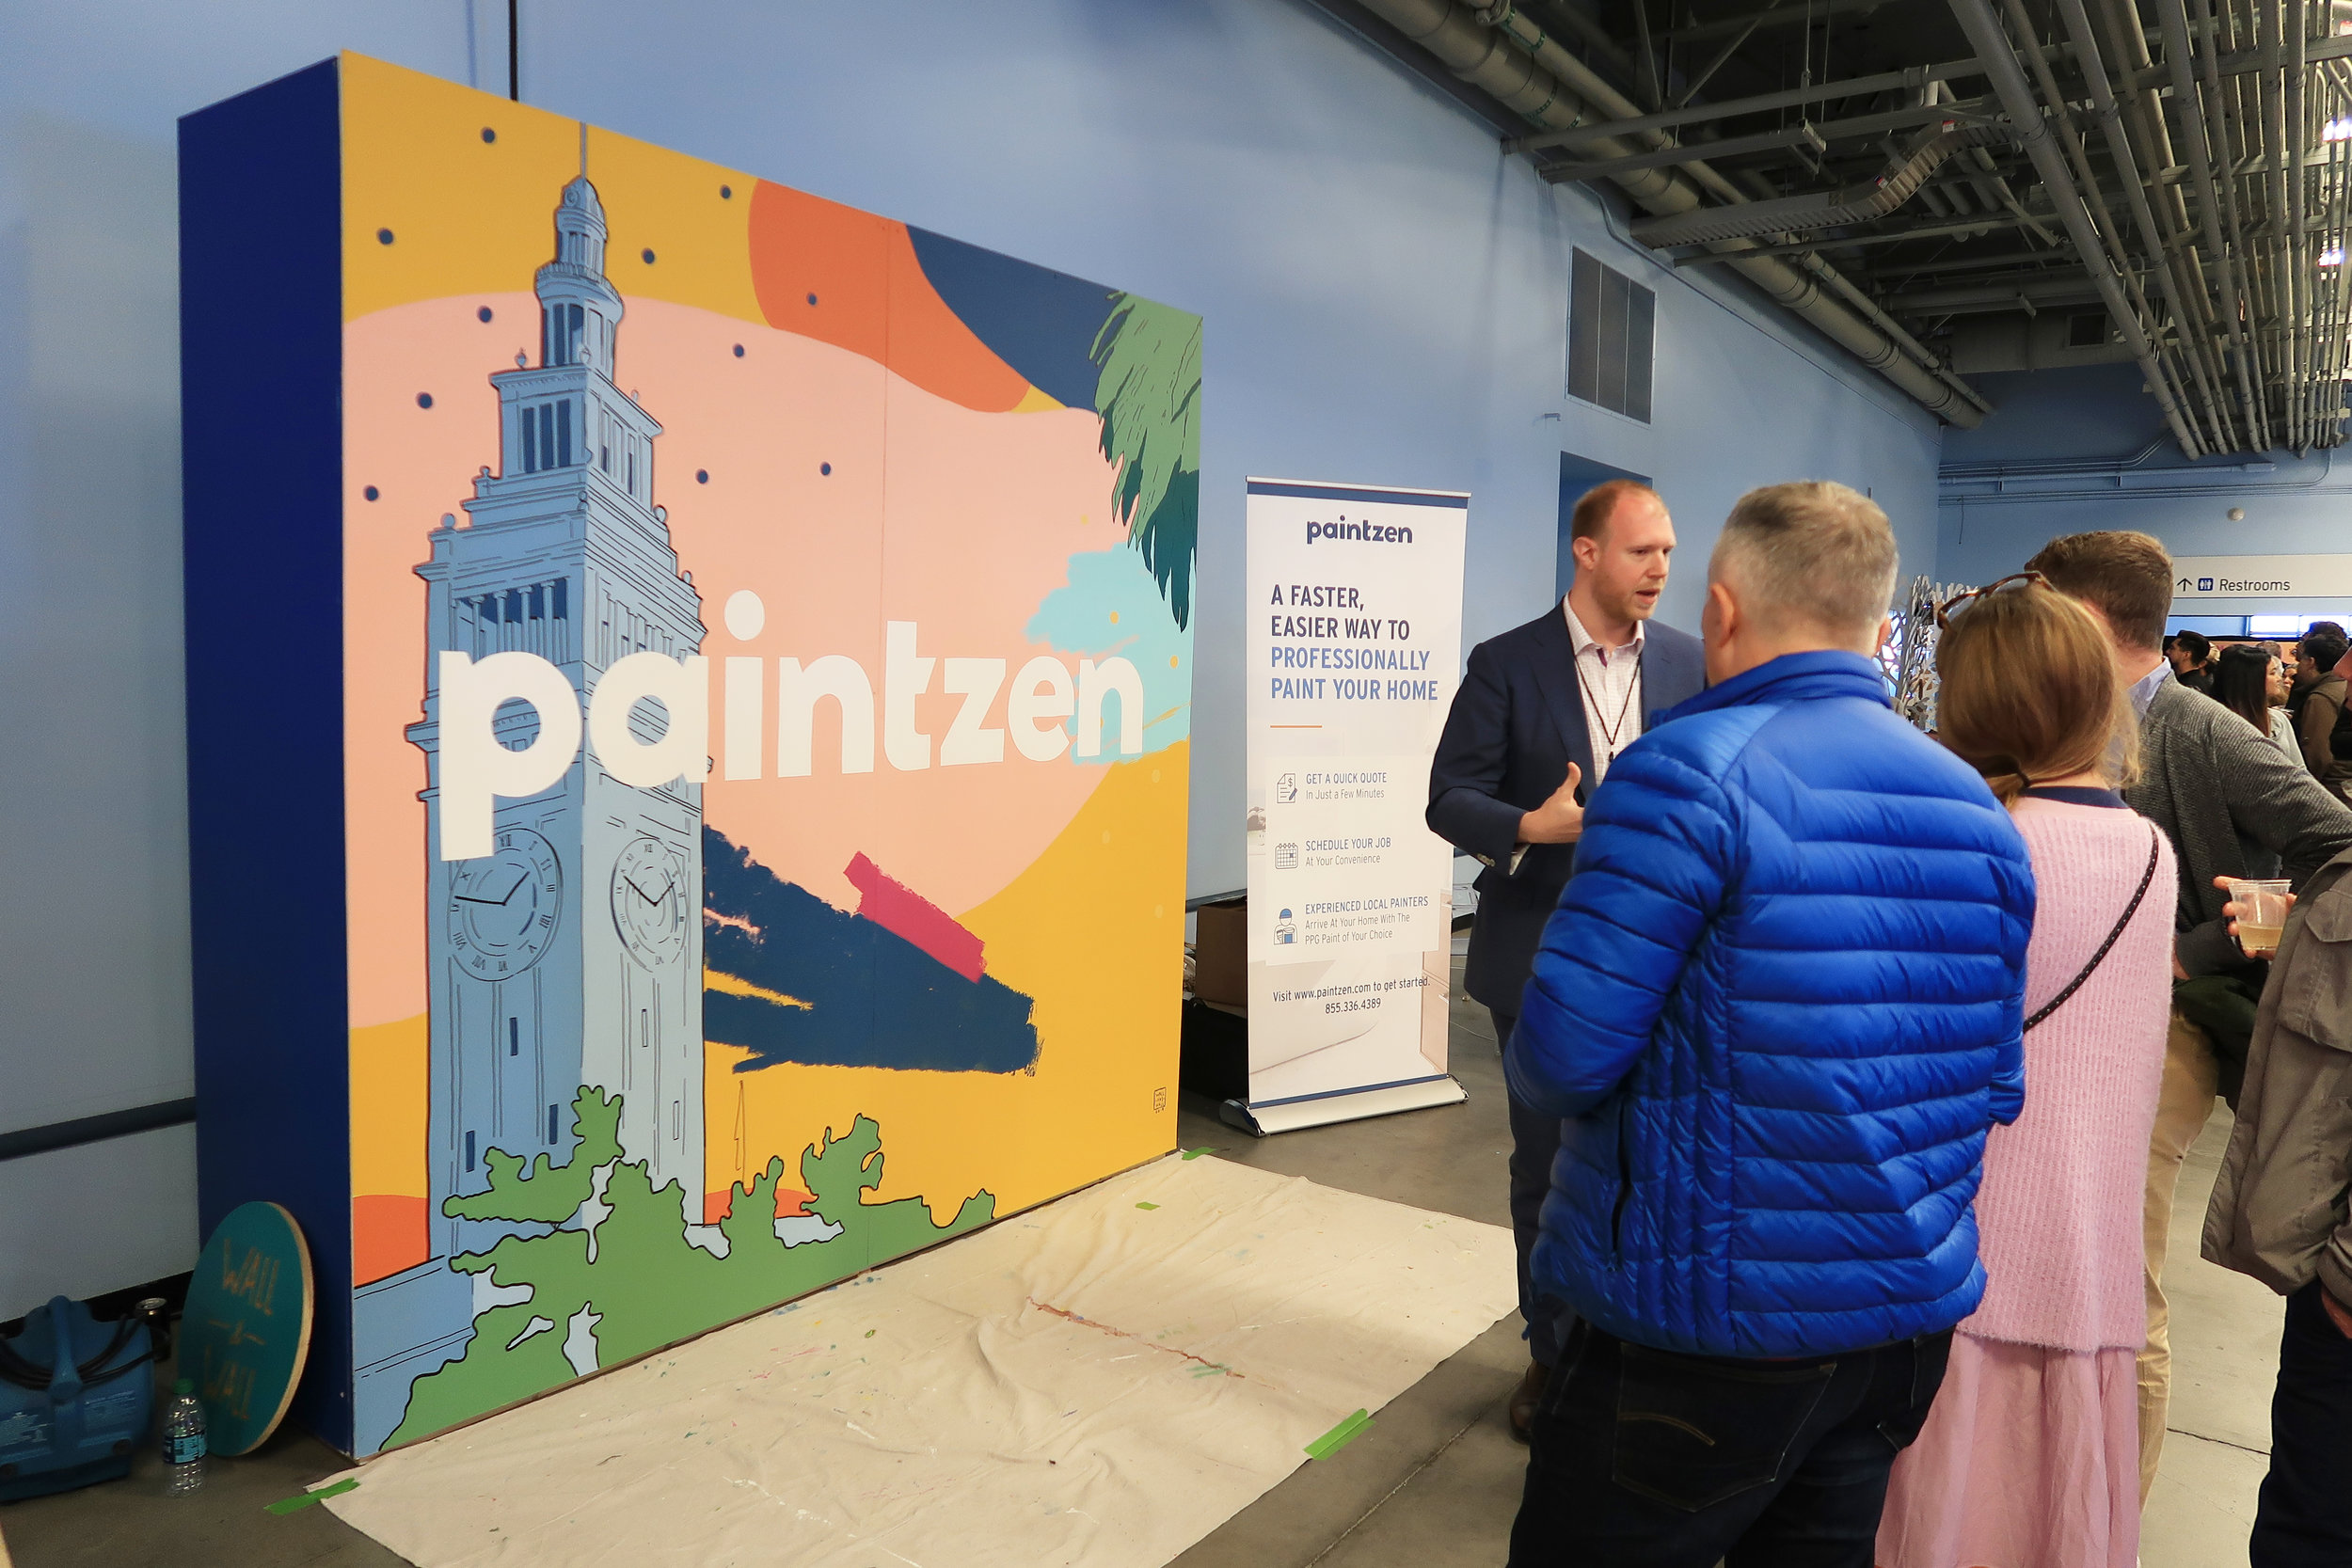 Event-live-painting-san-francisco-paintzen-wall-and-wall-mural-company.jpeg